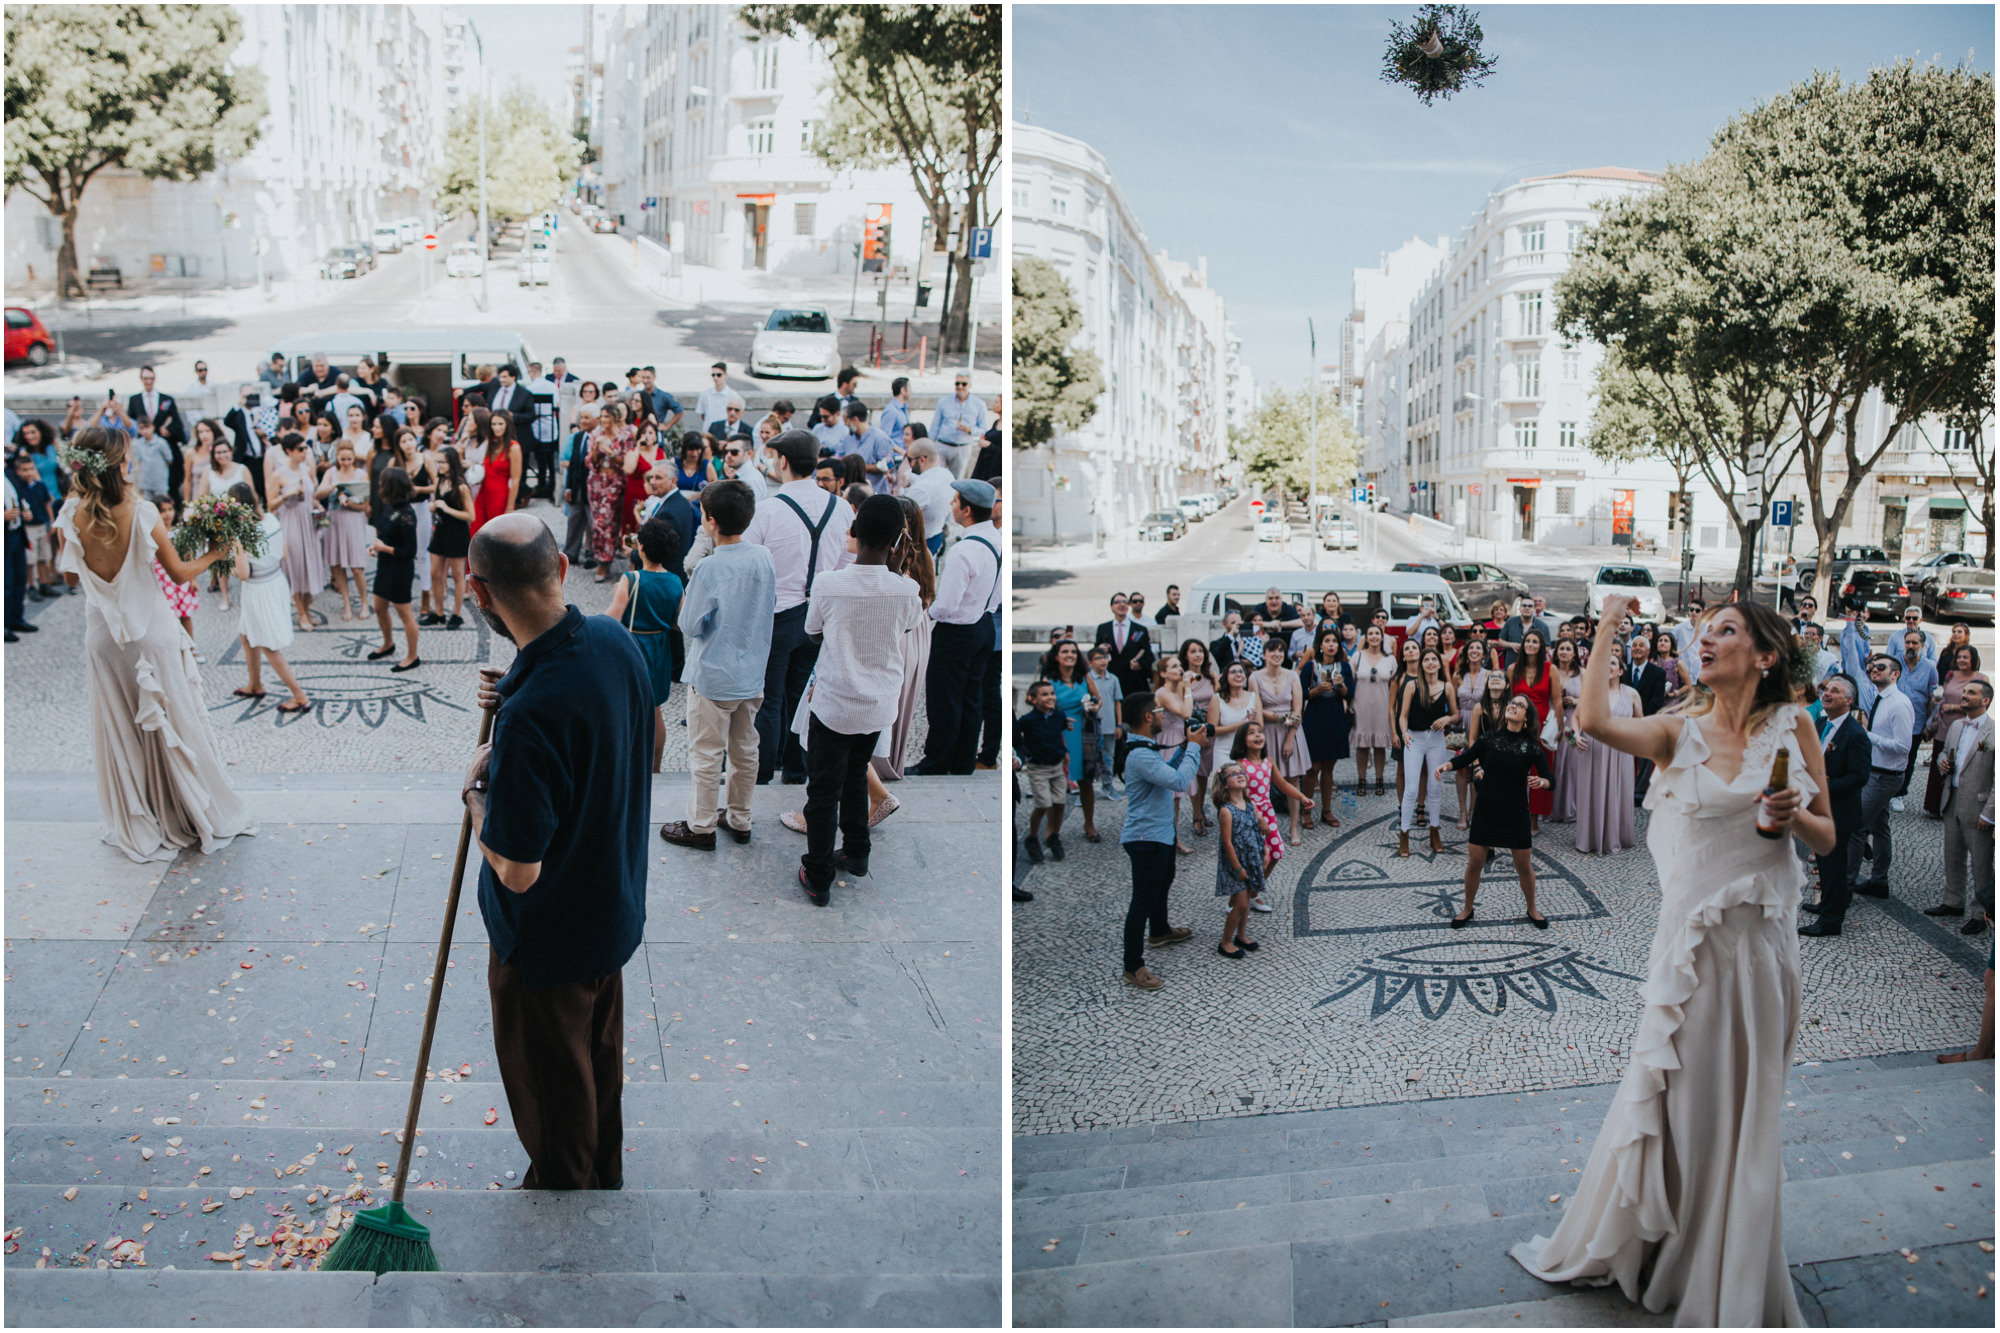 Filipe Santiago Fotografia-fotografo-malveira-lisboa-cascais-mafra-melhores-reportagem-wedding-photography-portugal-lisbon-best-natural-casamentos-lifestyle-bride-ideias-rustic-boho-hair-mackup-damas-preparativos-preparations-bridemaids-dress-shoes-bouquet-trends-church-cerimony-saida-igreja-dicas-drink-toast-beer